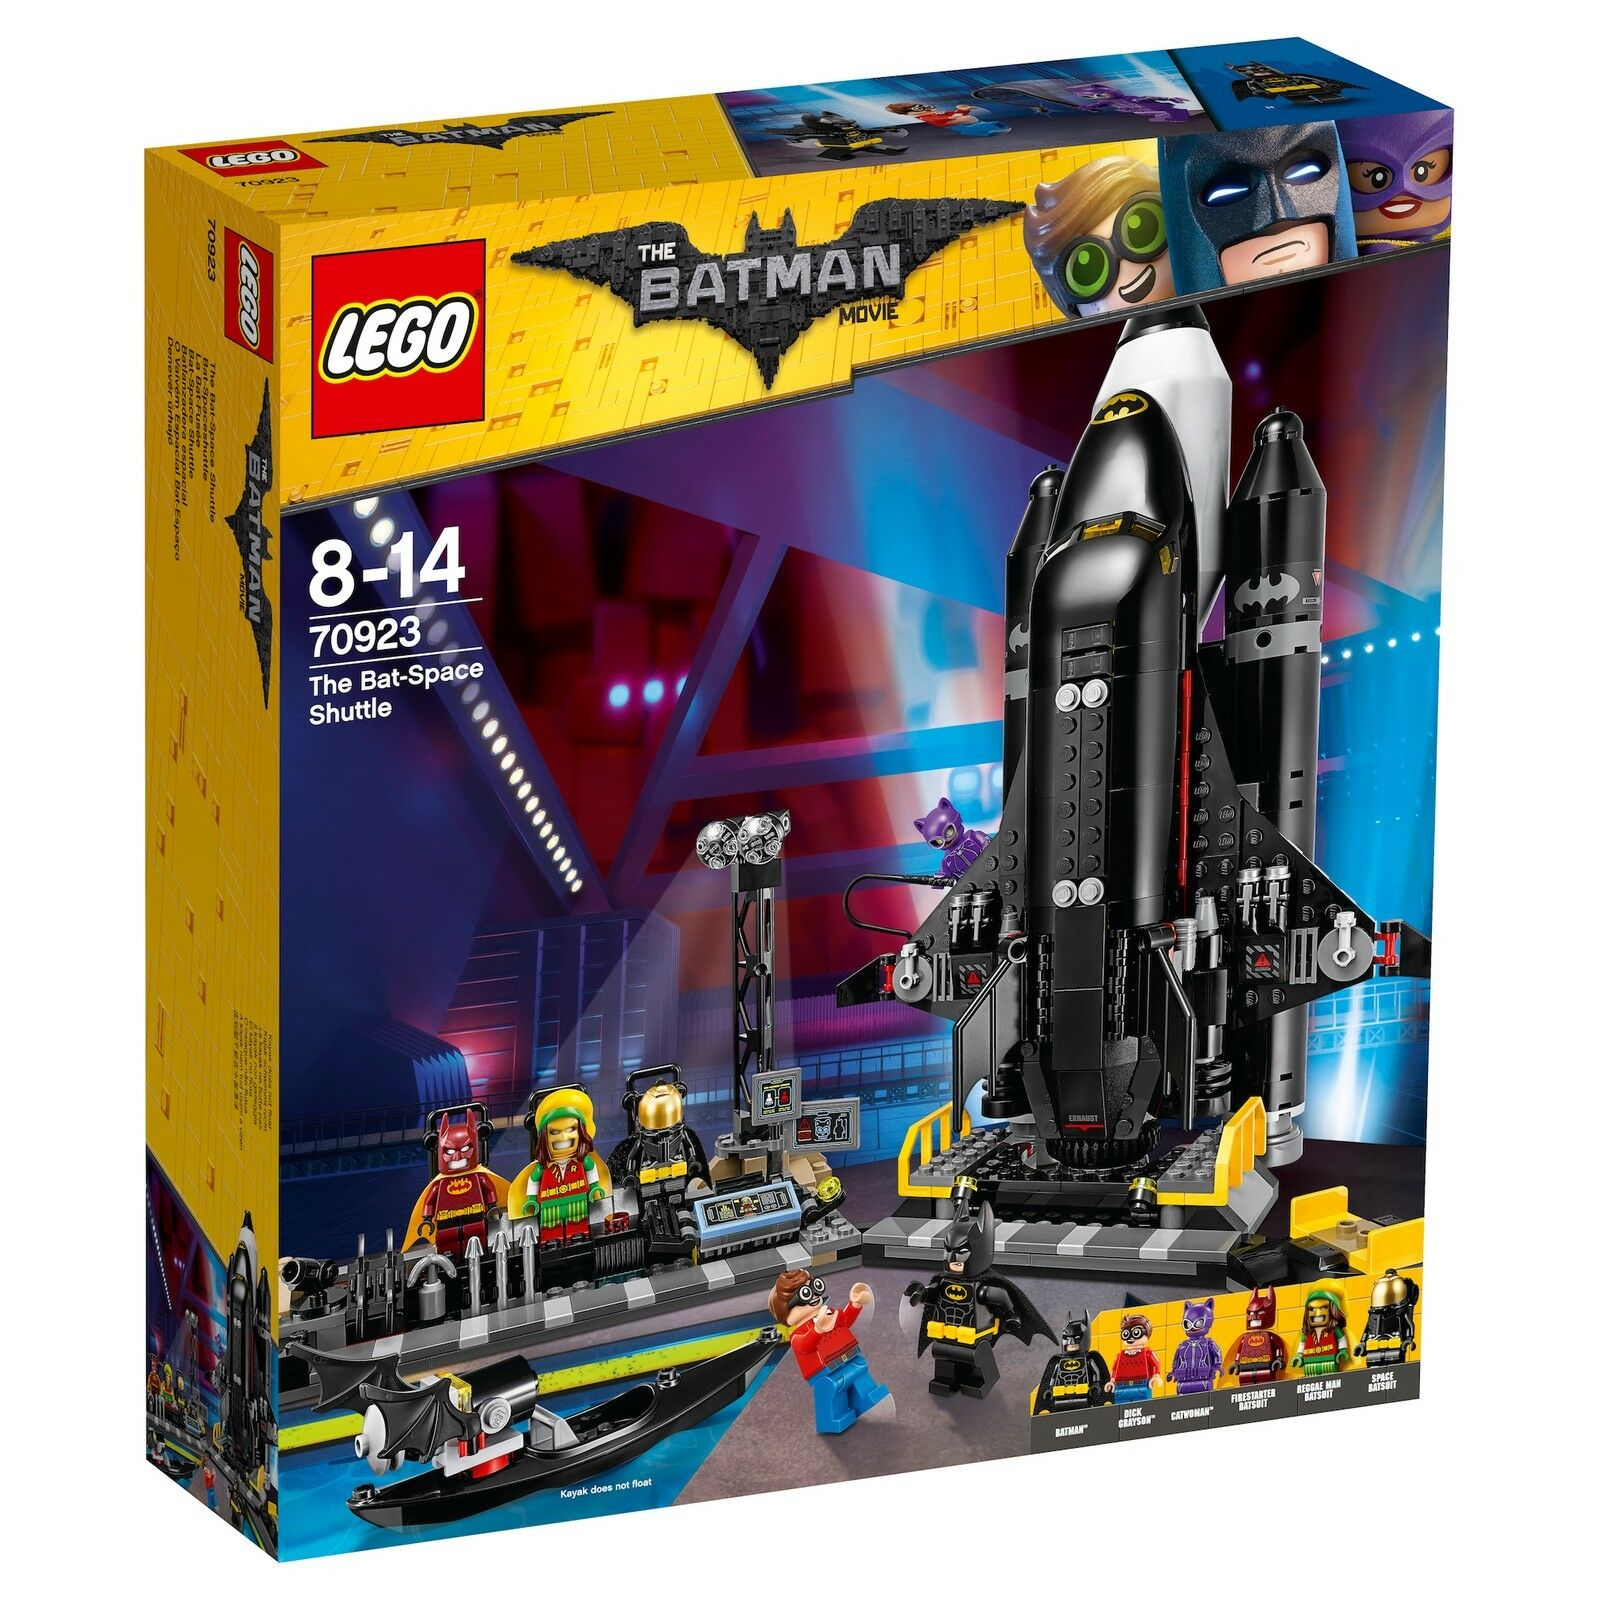 THE LEGO® BATMAN MOVIE 70923 Bat-Spaceshuttle NEU OVP_ The Bat-Space Shuttle NEW